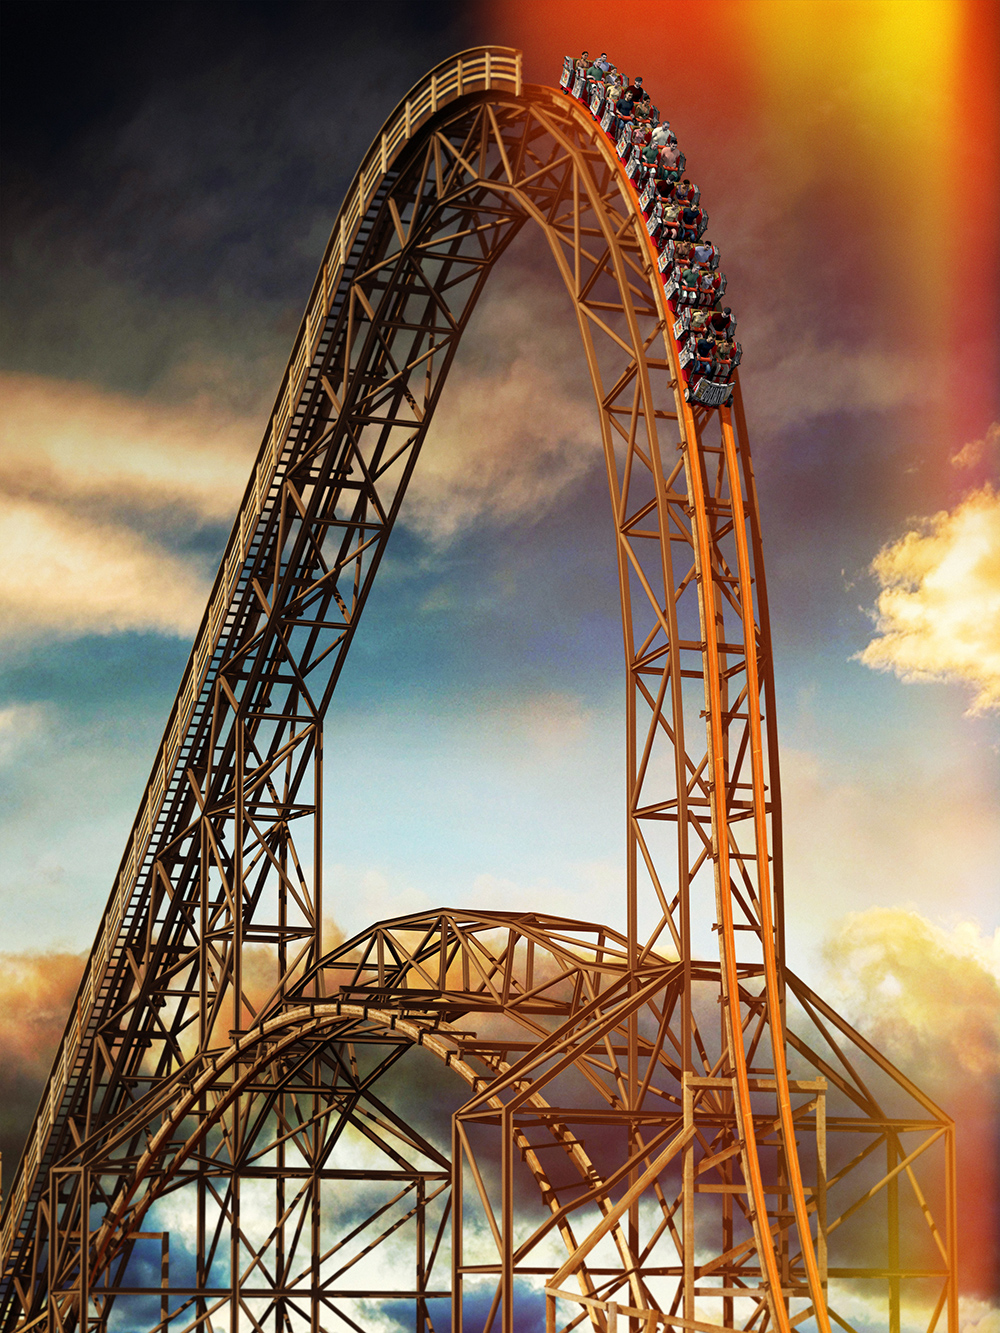 5 New Record Breaking Rides That Will Terrify You This